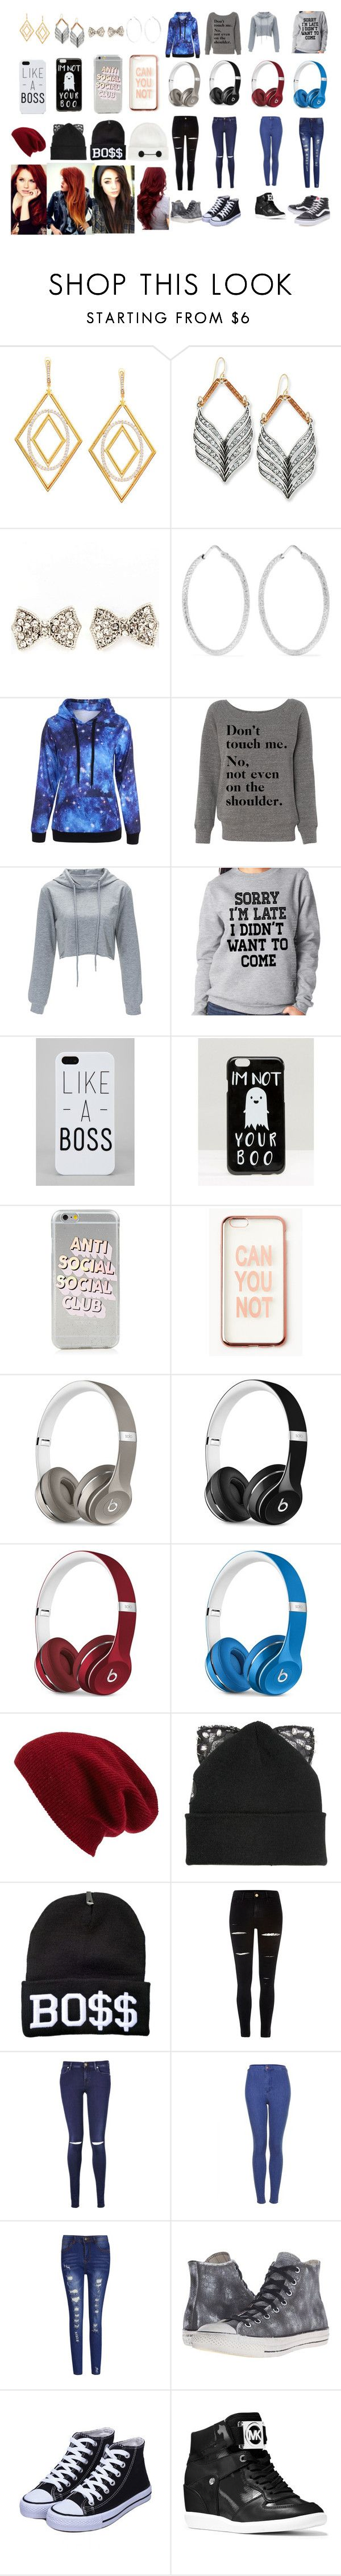 """""""choose#1"""" by taylor-356 ❤ liked on Polyvore featuring Ivanka Trump, Lulu Frost, Carolina Bucci, SignatureTshirts, ASOS, Missguided, Beats by Dr. Dre, Halogen, Silver Spoon Attire and Disney"""